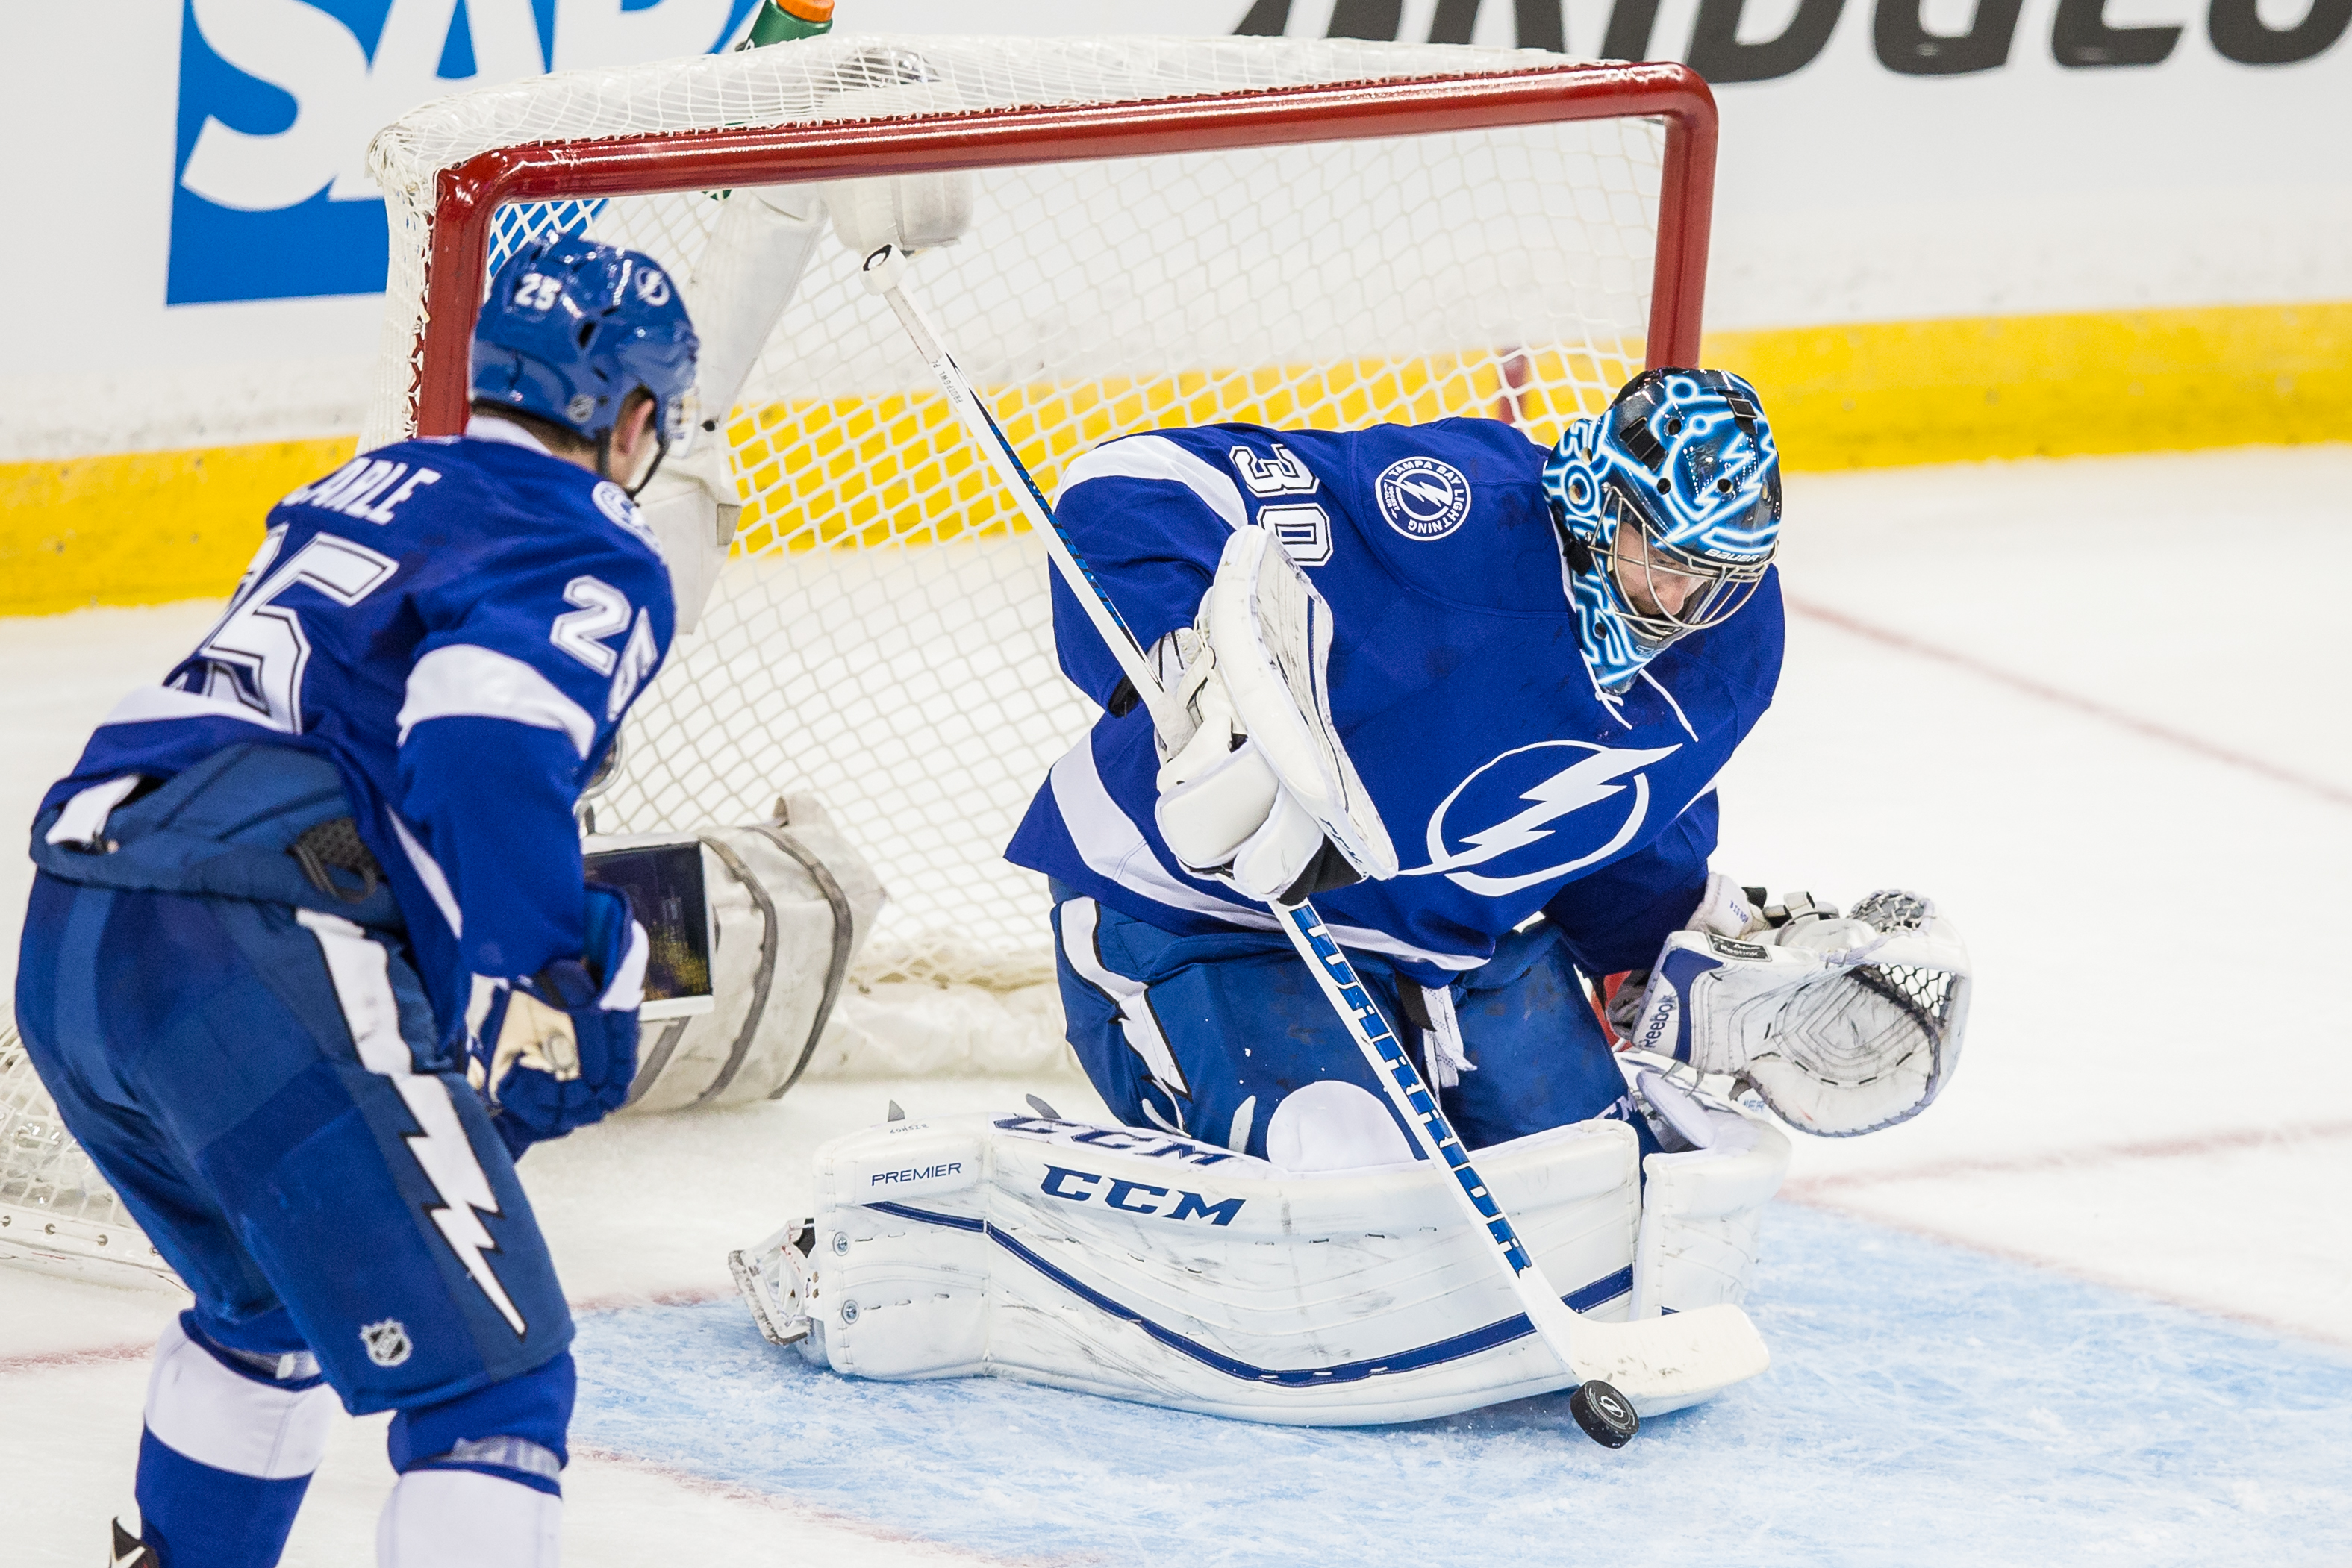 Ben Bishop has been hard on the Red Wings the last two years./TRAVIS PENDERGRASS